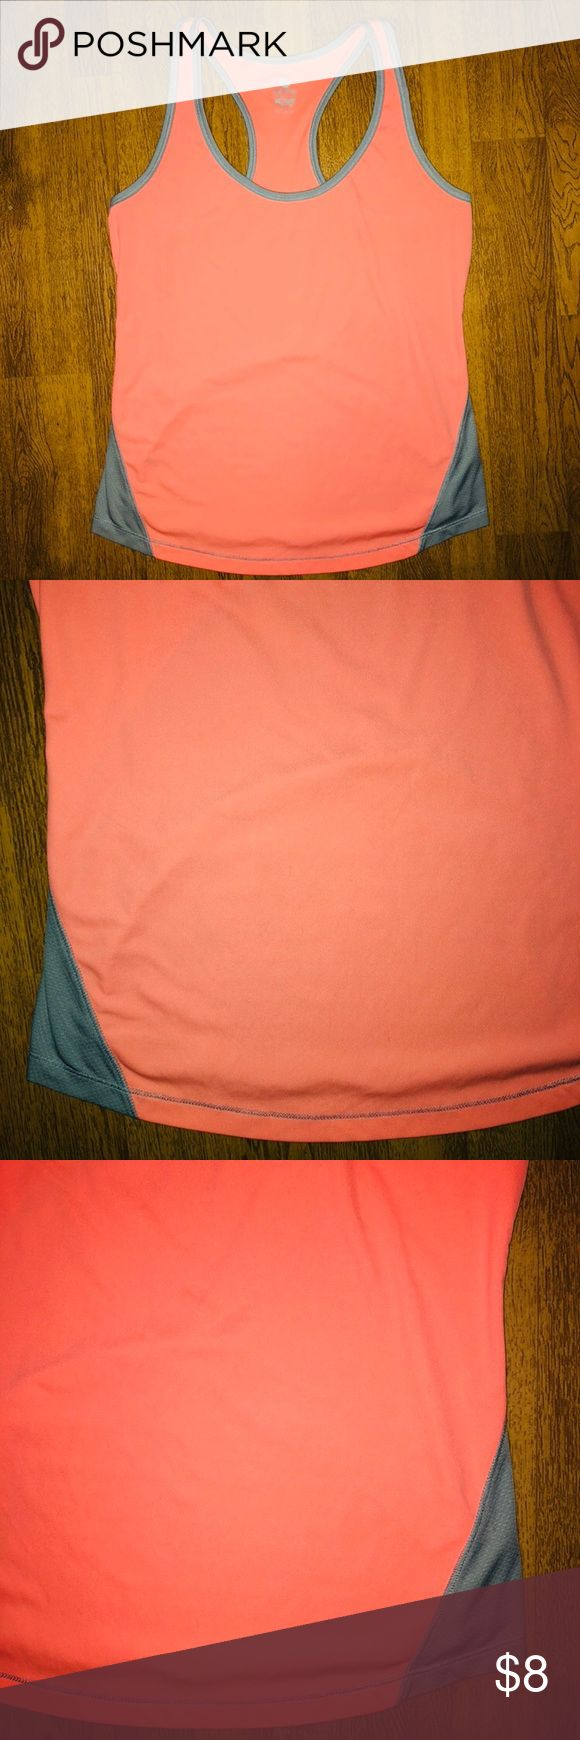 M Old Navy Orange & Gray Semi-Fit Active Tank Top Size: Medium     Brand: Old Navy        Details: Semi fit meaning it's slightly loose fitting. Orange with gray color block like design. 100% polyester. Perfect for that active lady    Condition: Excellent Used   #ForSale #ClothesForSale #InstaShop #ClosetForSale   Relatable Tags: #OldNavy #ON #Orange#Gray #Active #SemiFit Old Navy Tops Tank Tops